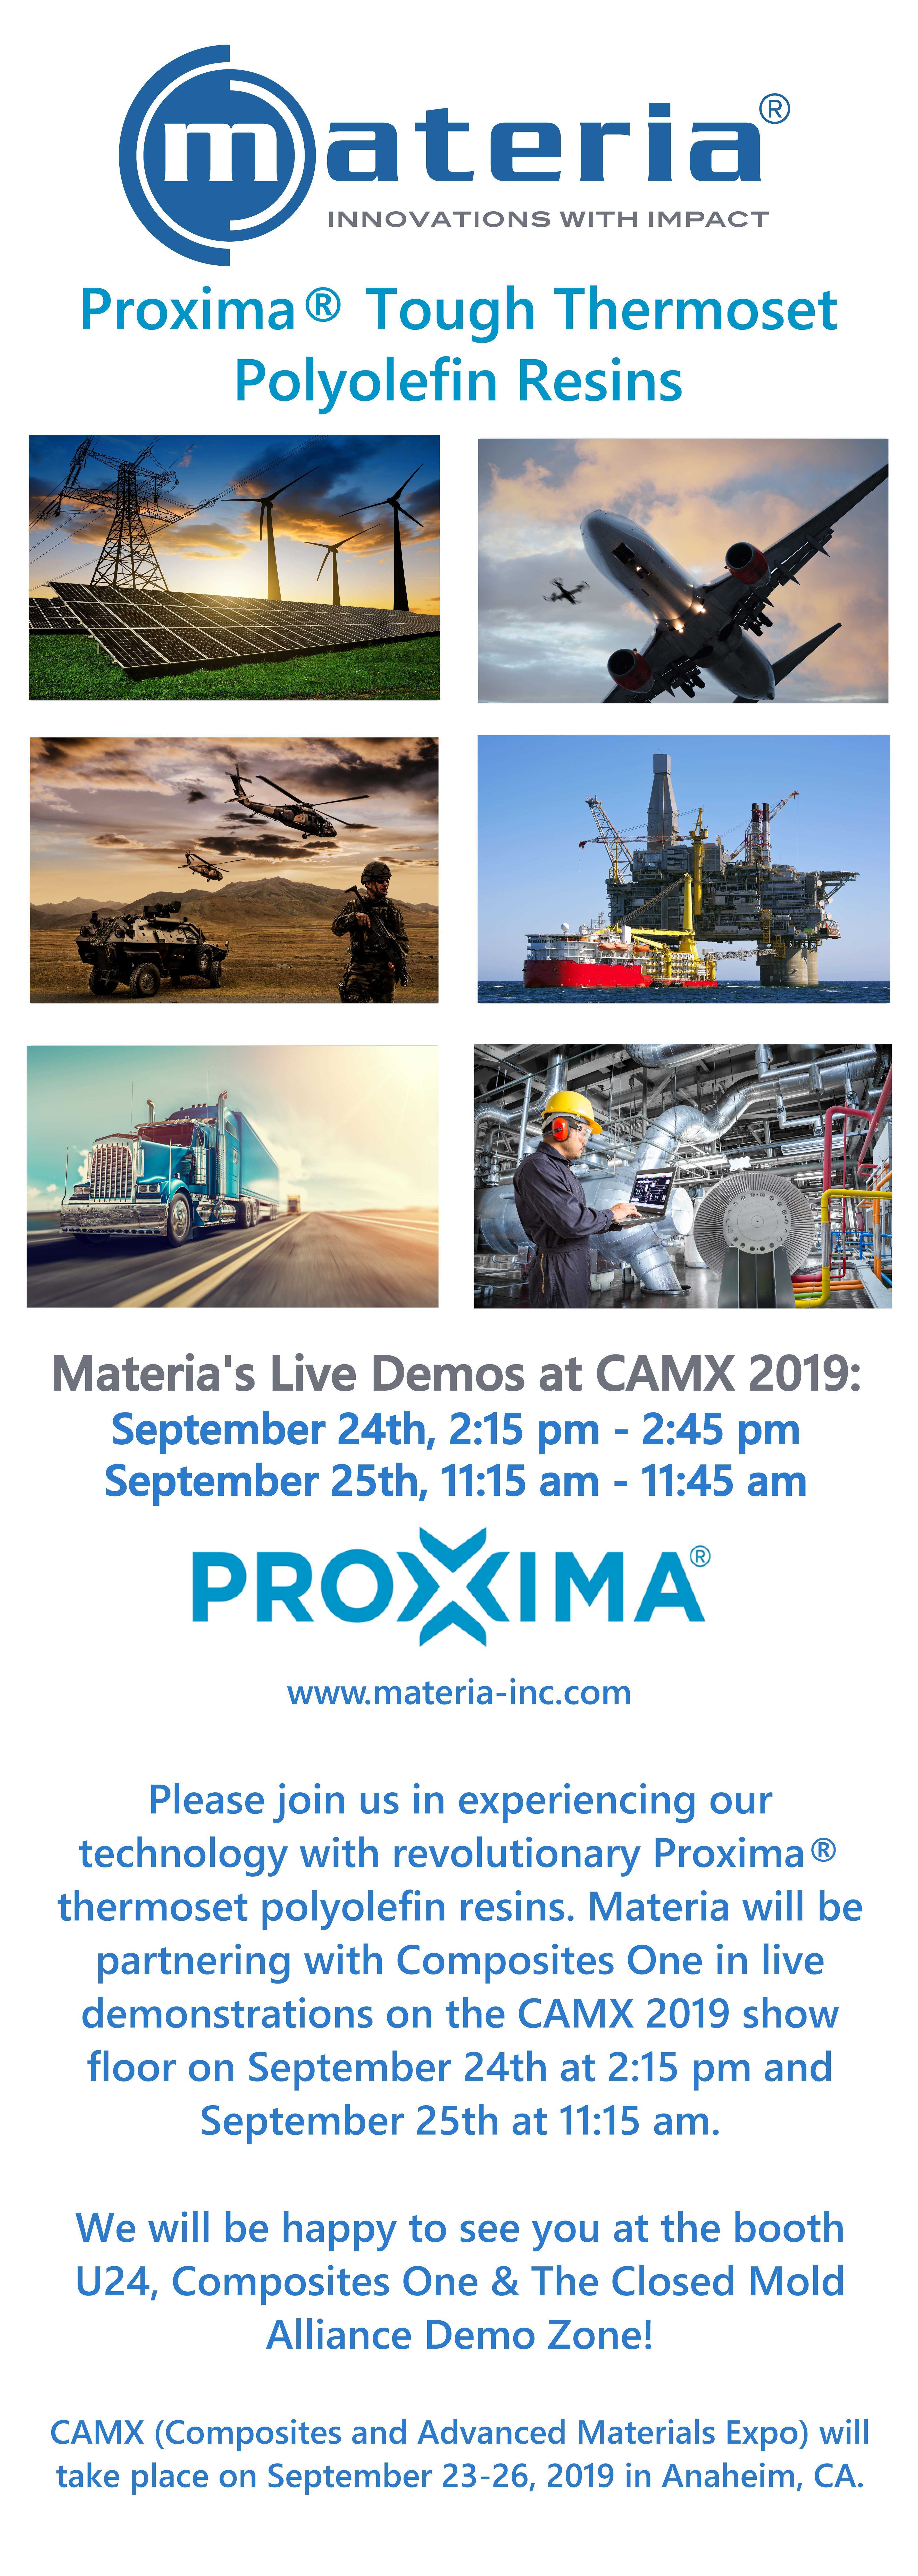 Materia to partner with Composites One for live demonstrations of Materia's technology at CAMX 2019